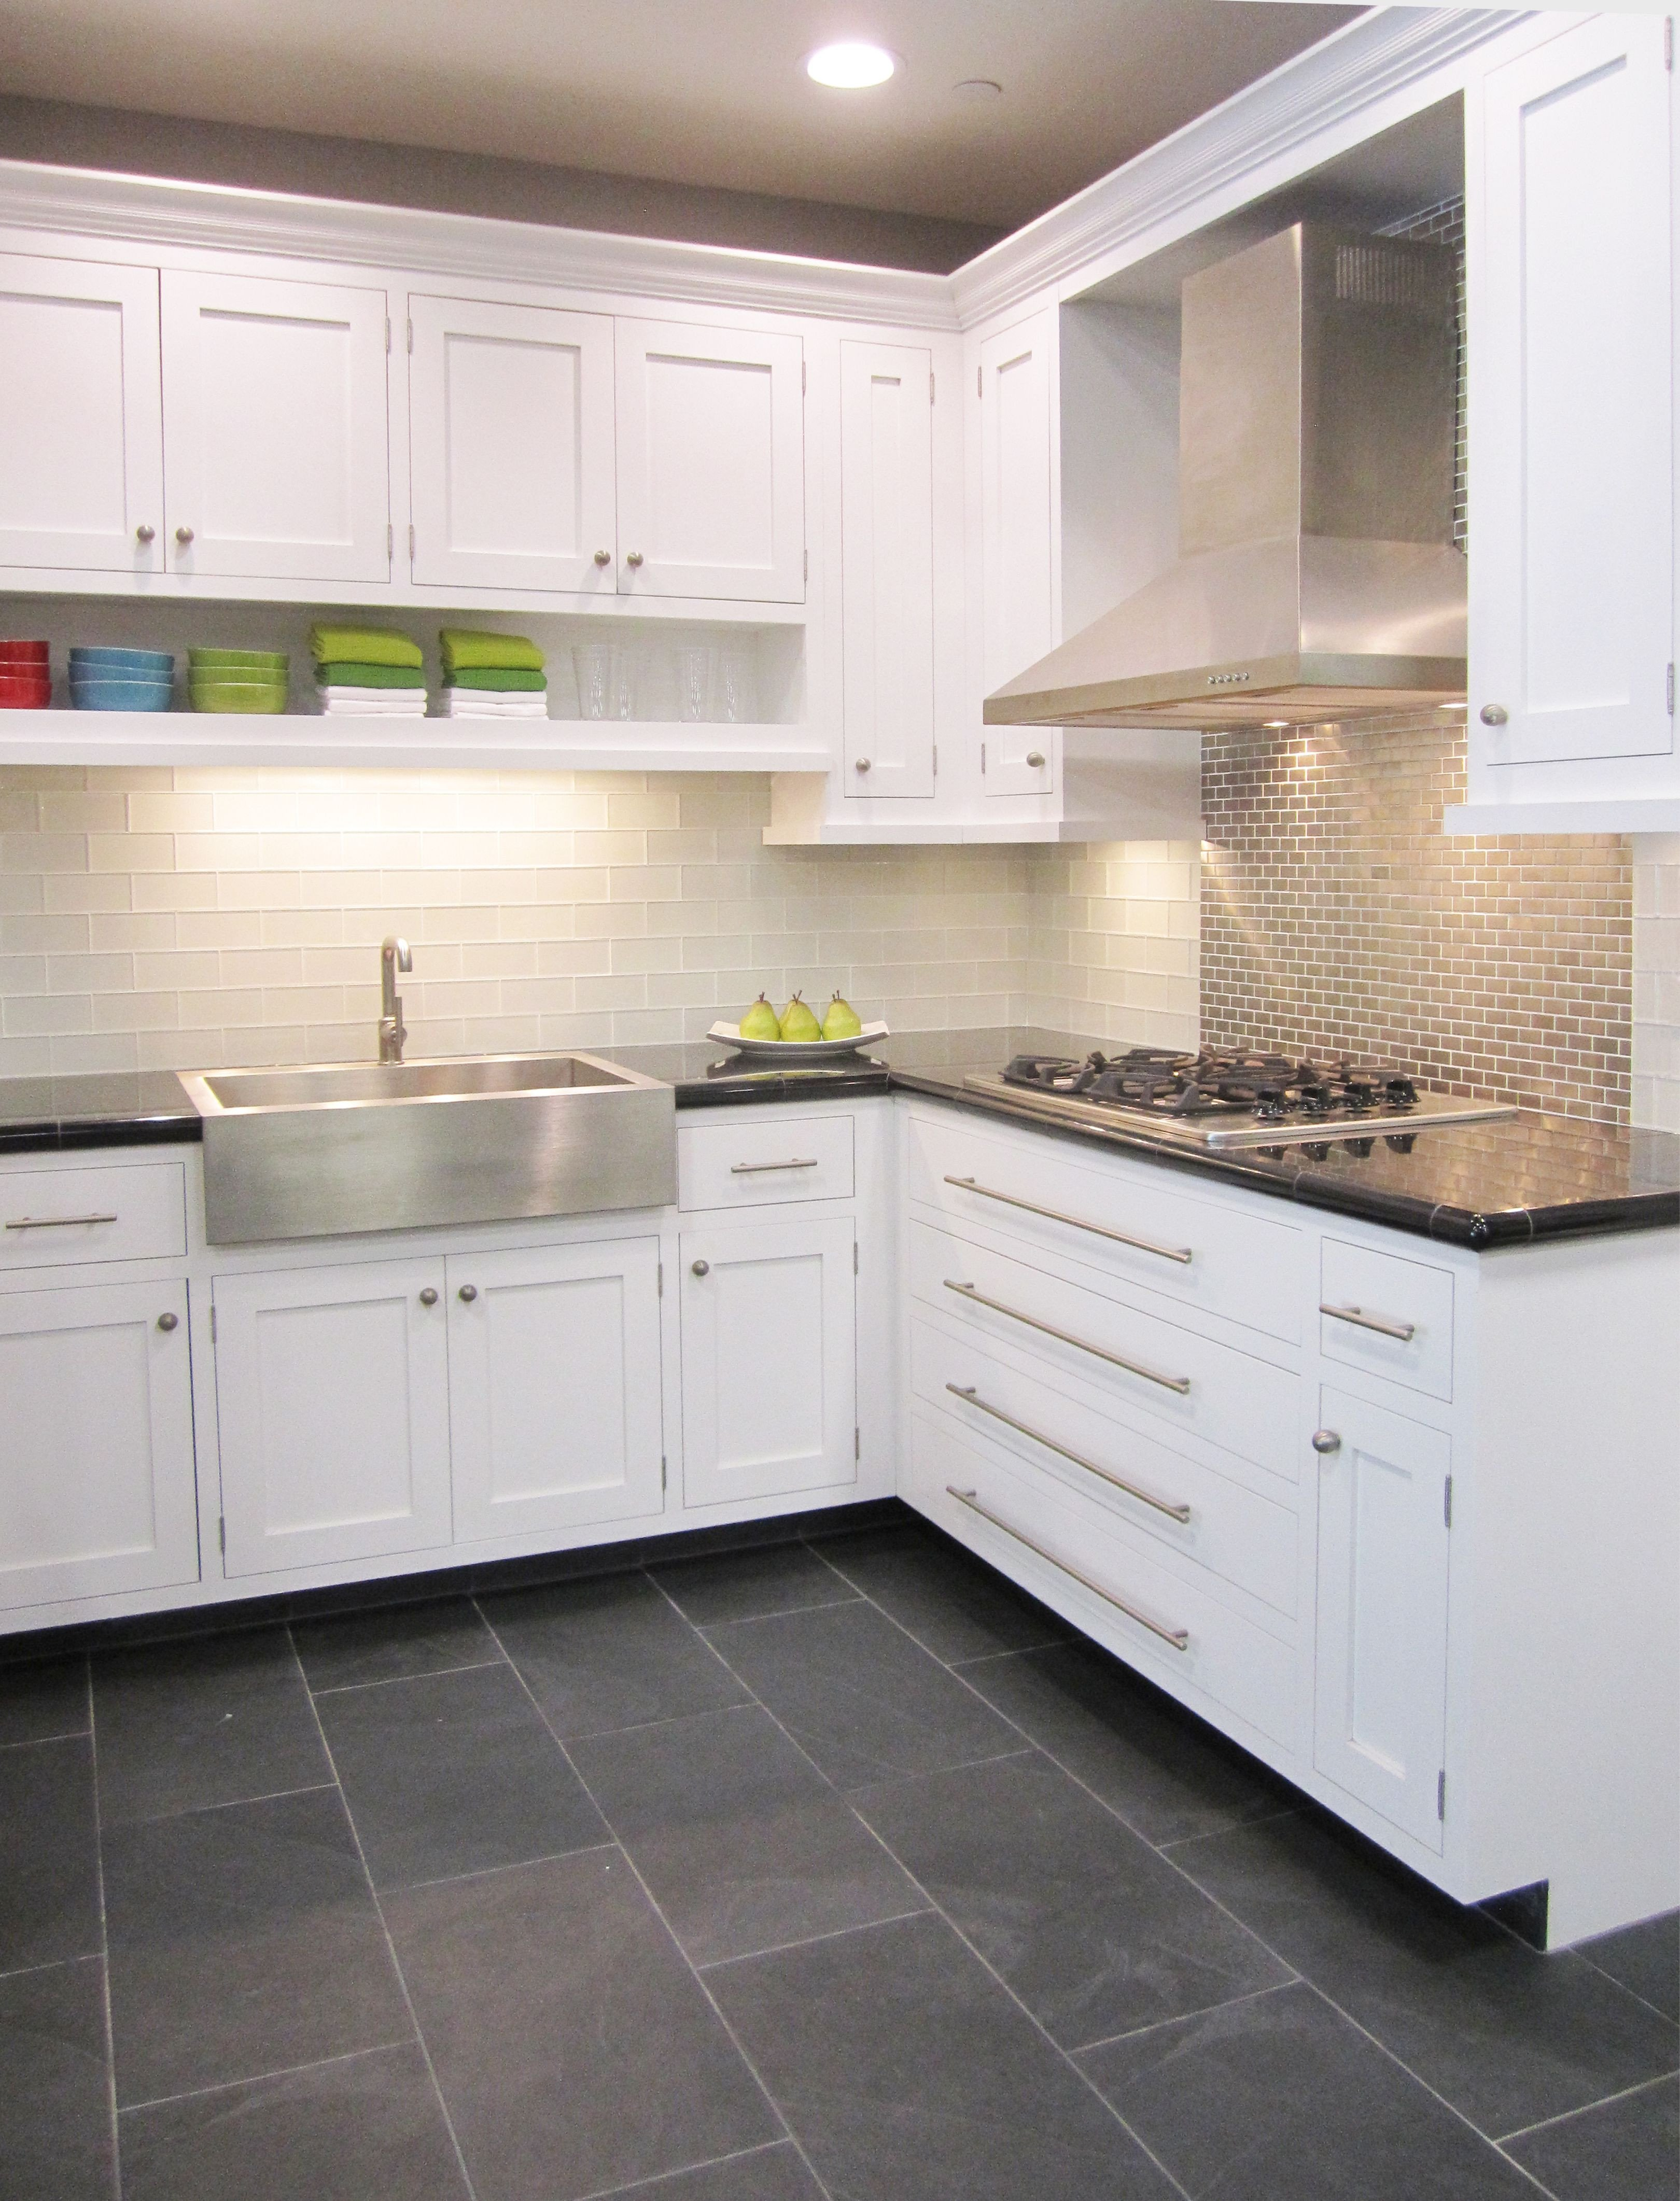 Floor and Decor Kitchen Backsplash Beautiful Frosted White Glass Subway with Stainless Steel thetileshop Kitchen Tile